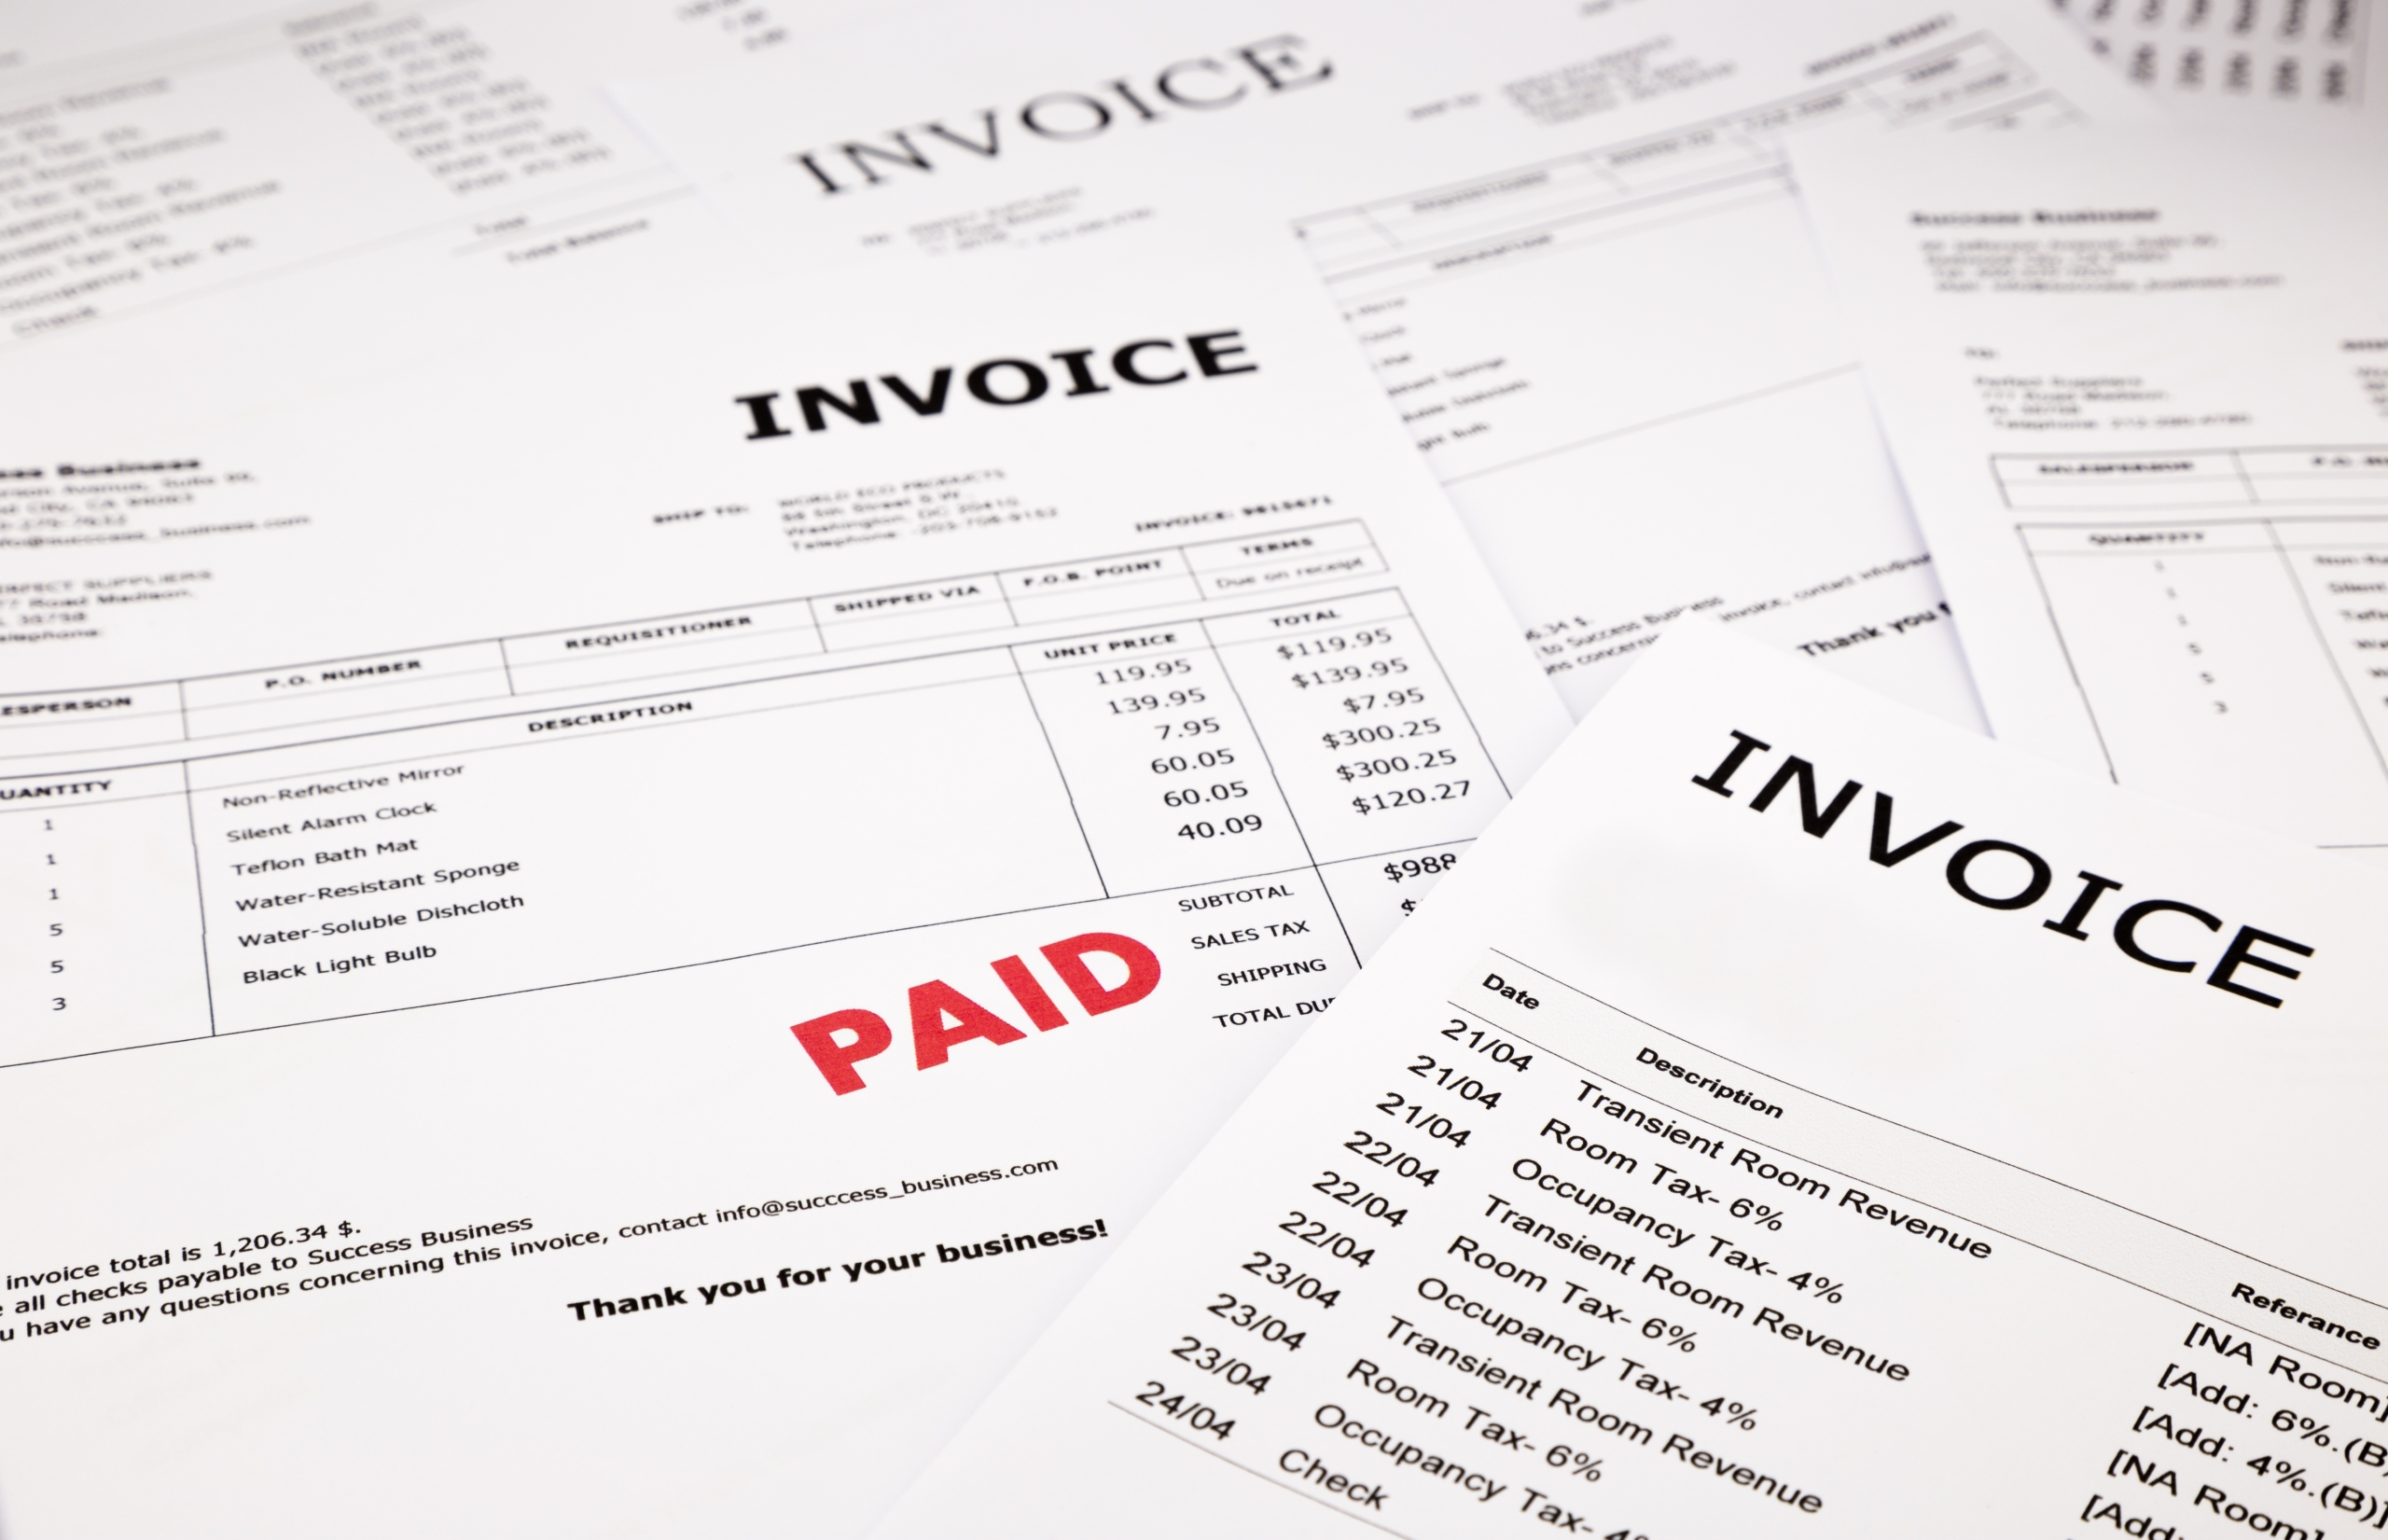 Invoices Paid - SmarterPay E-Invoicing Solution